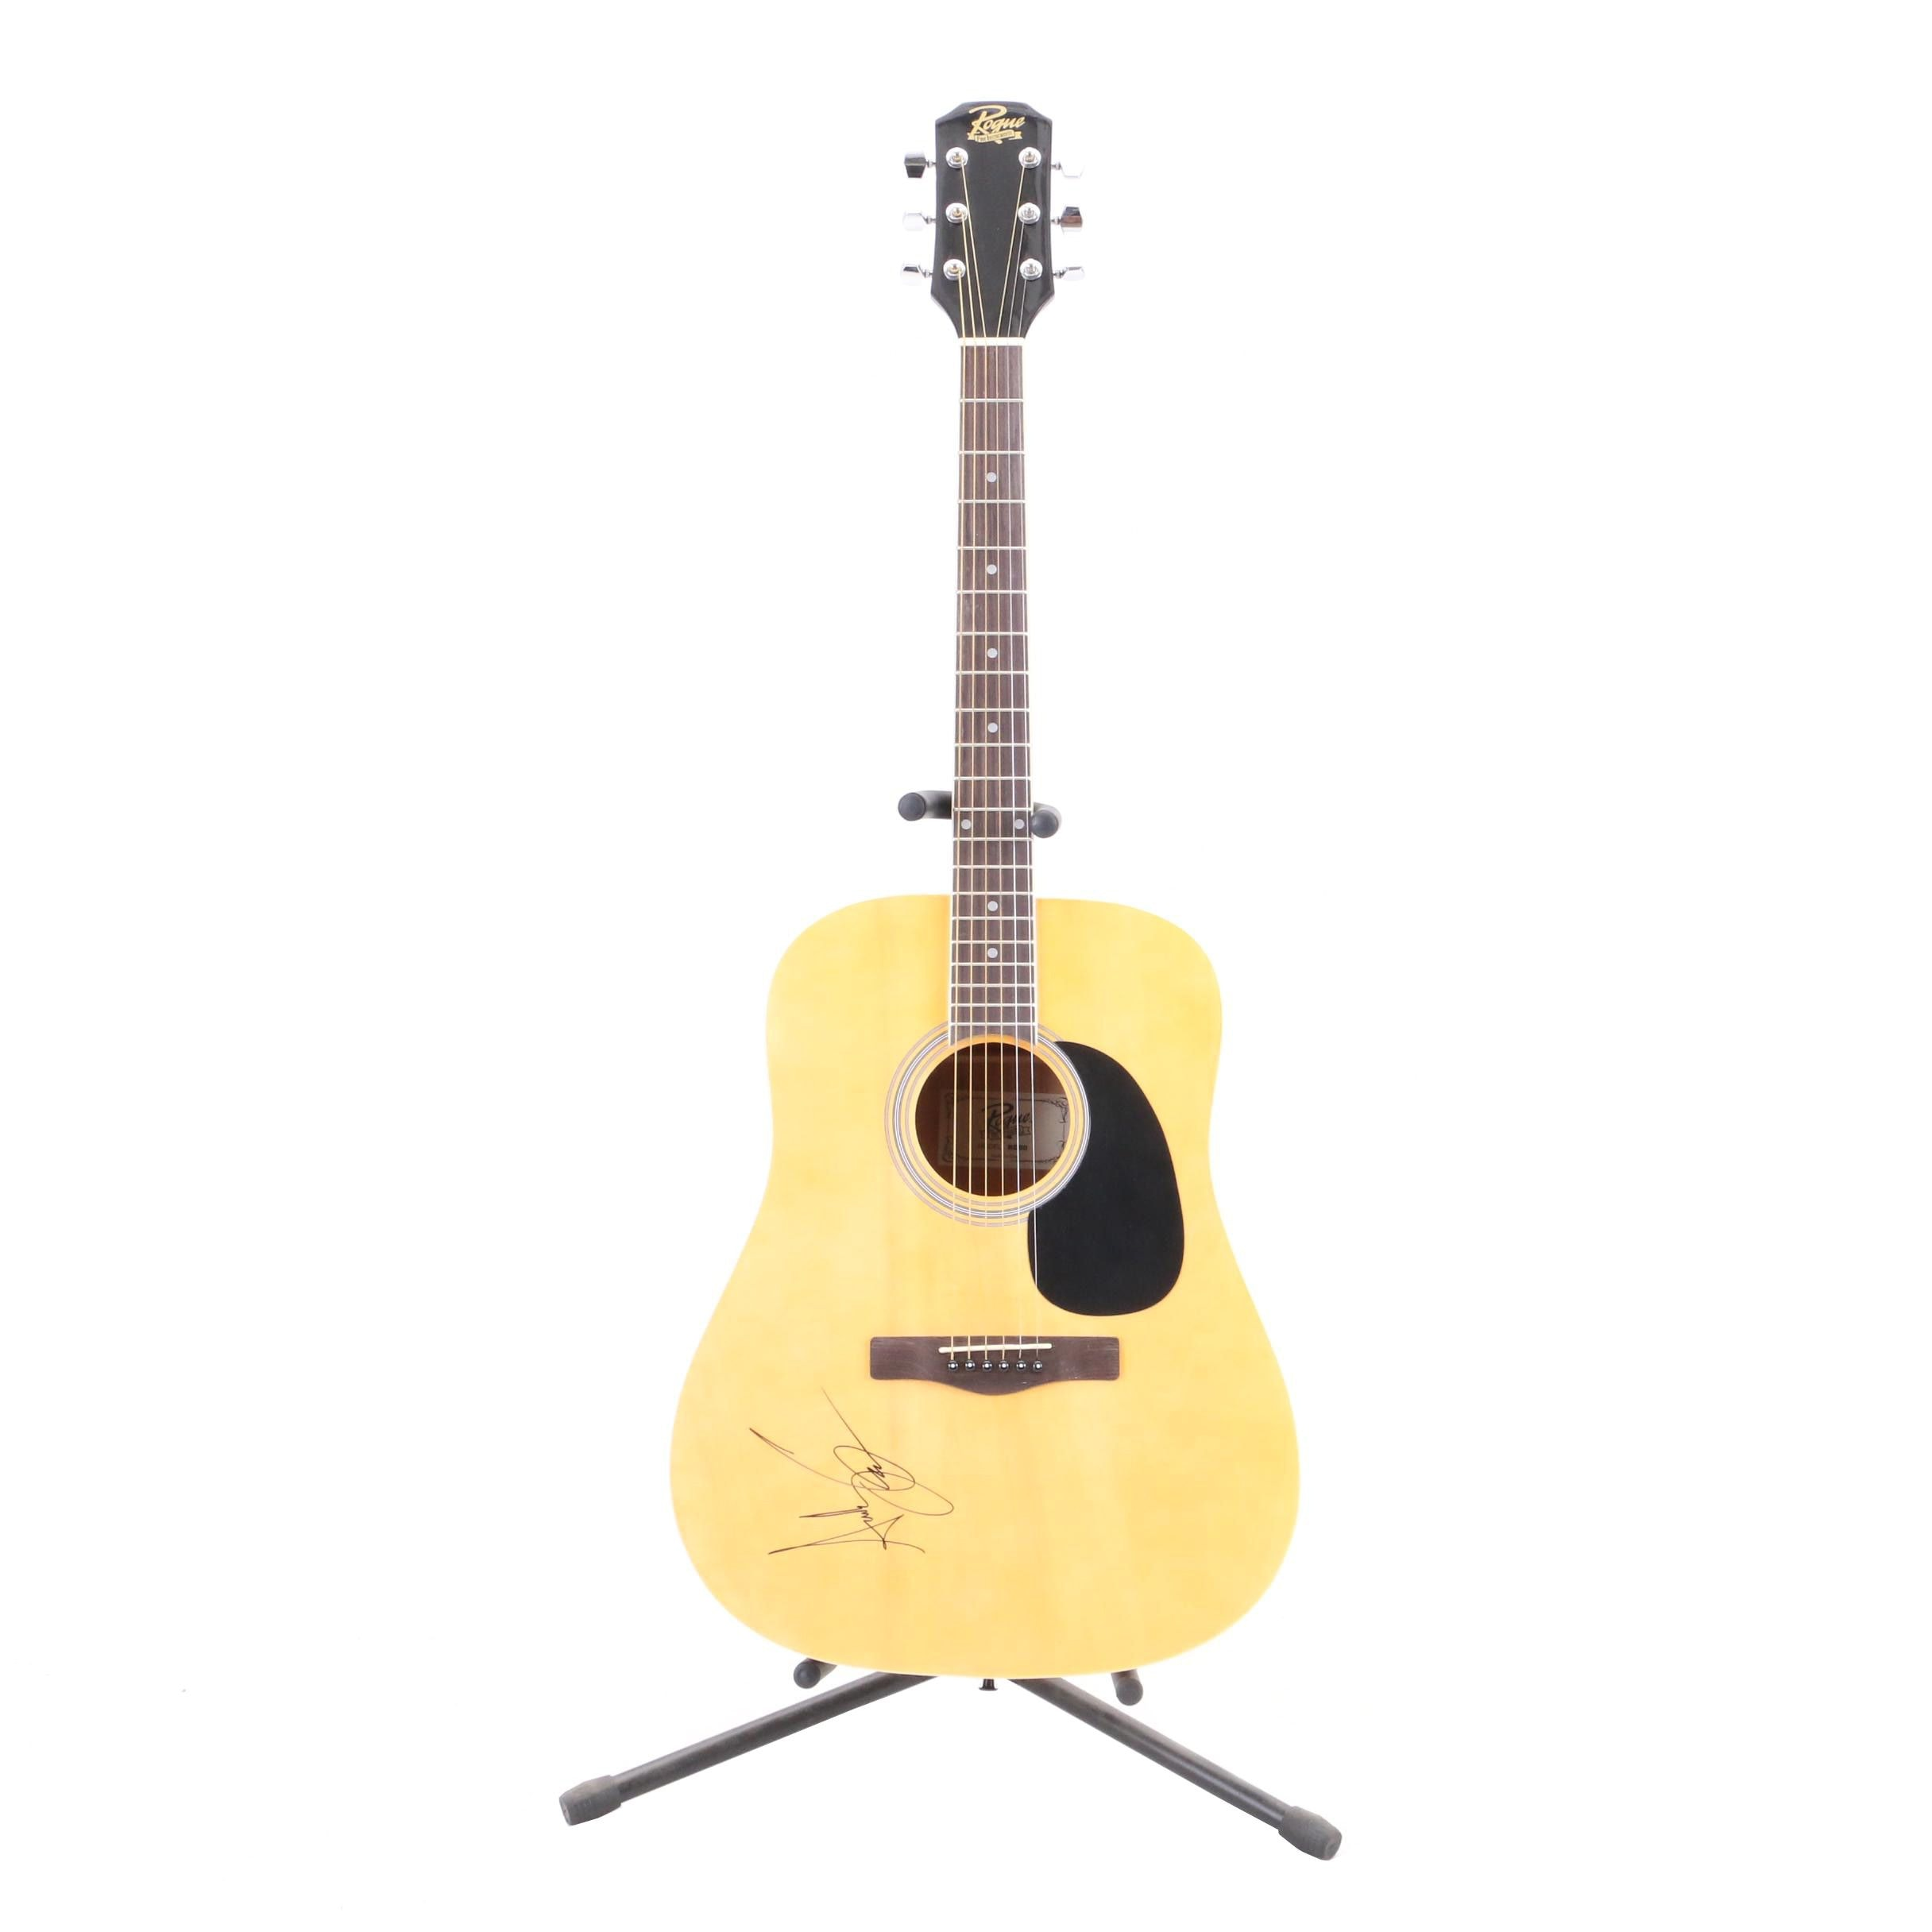 Andy Grammer Autographed Rogue Six-String Guitar